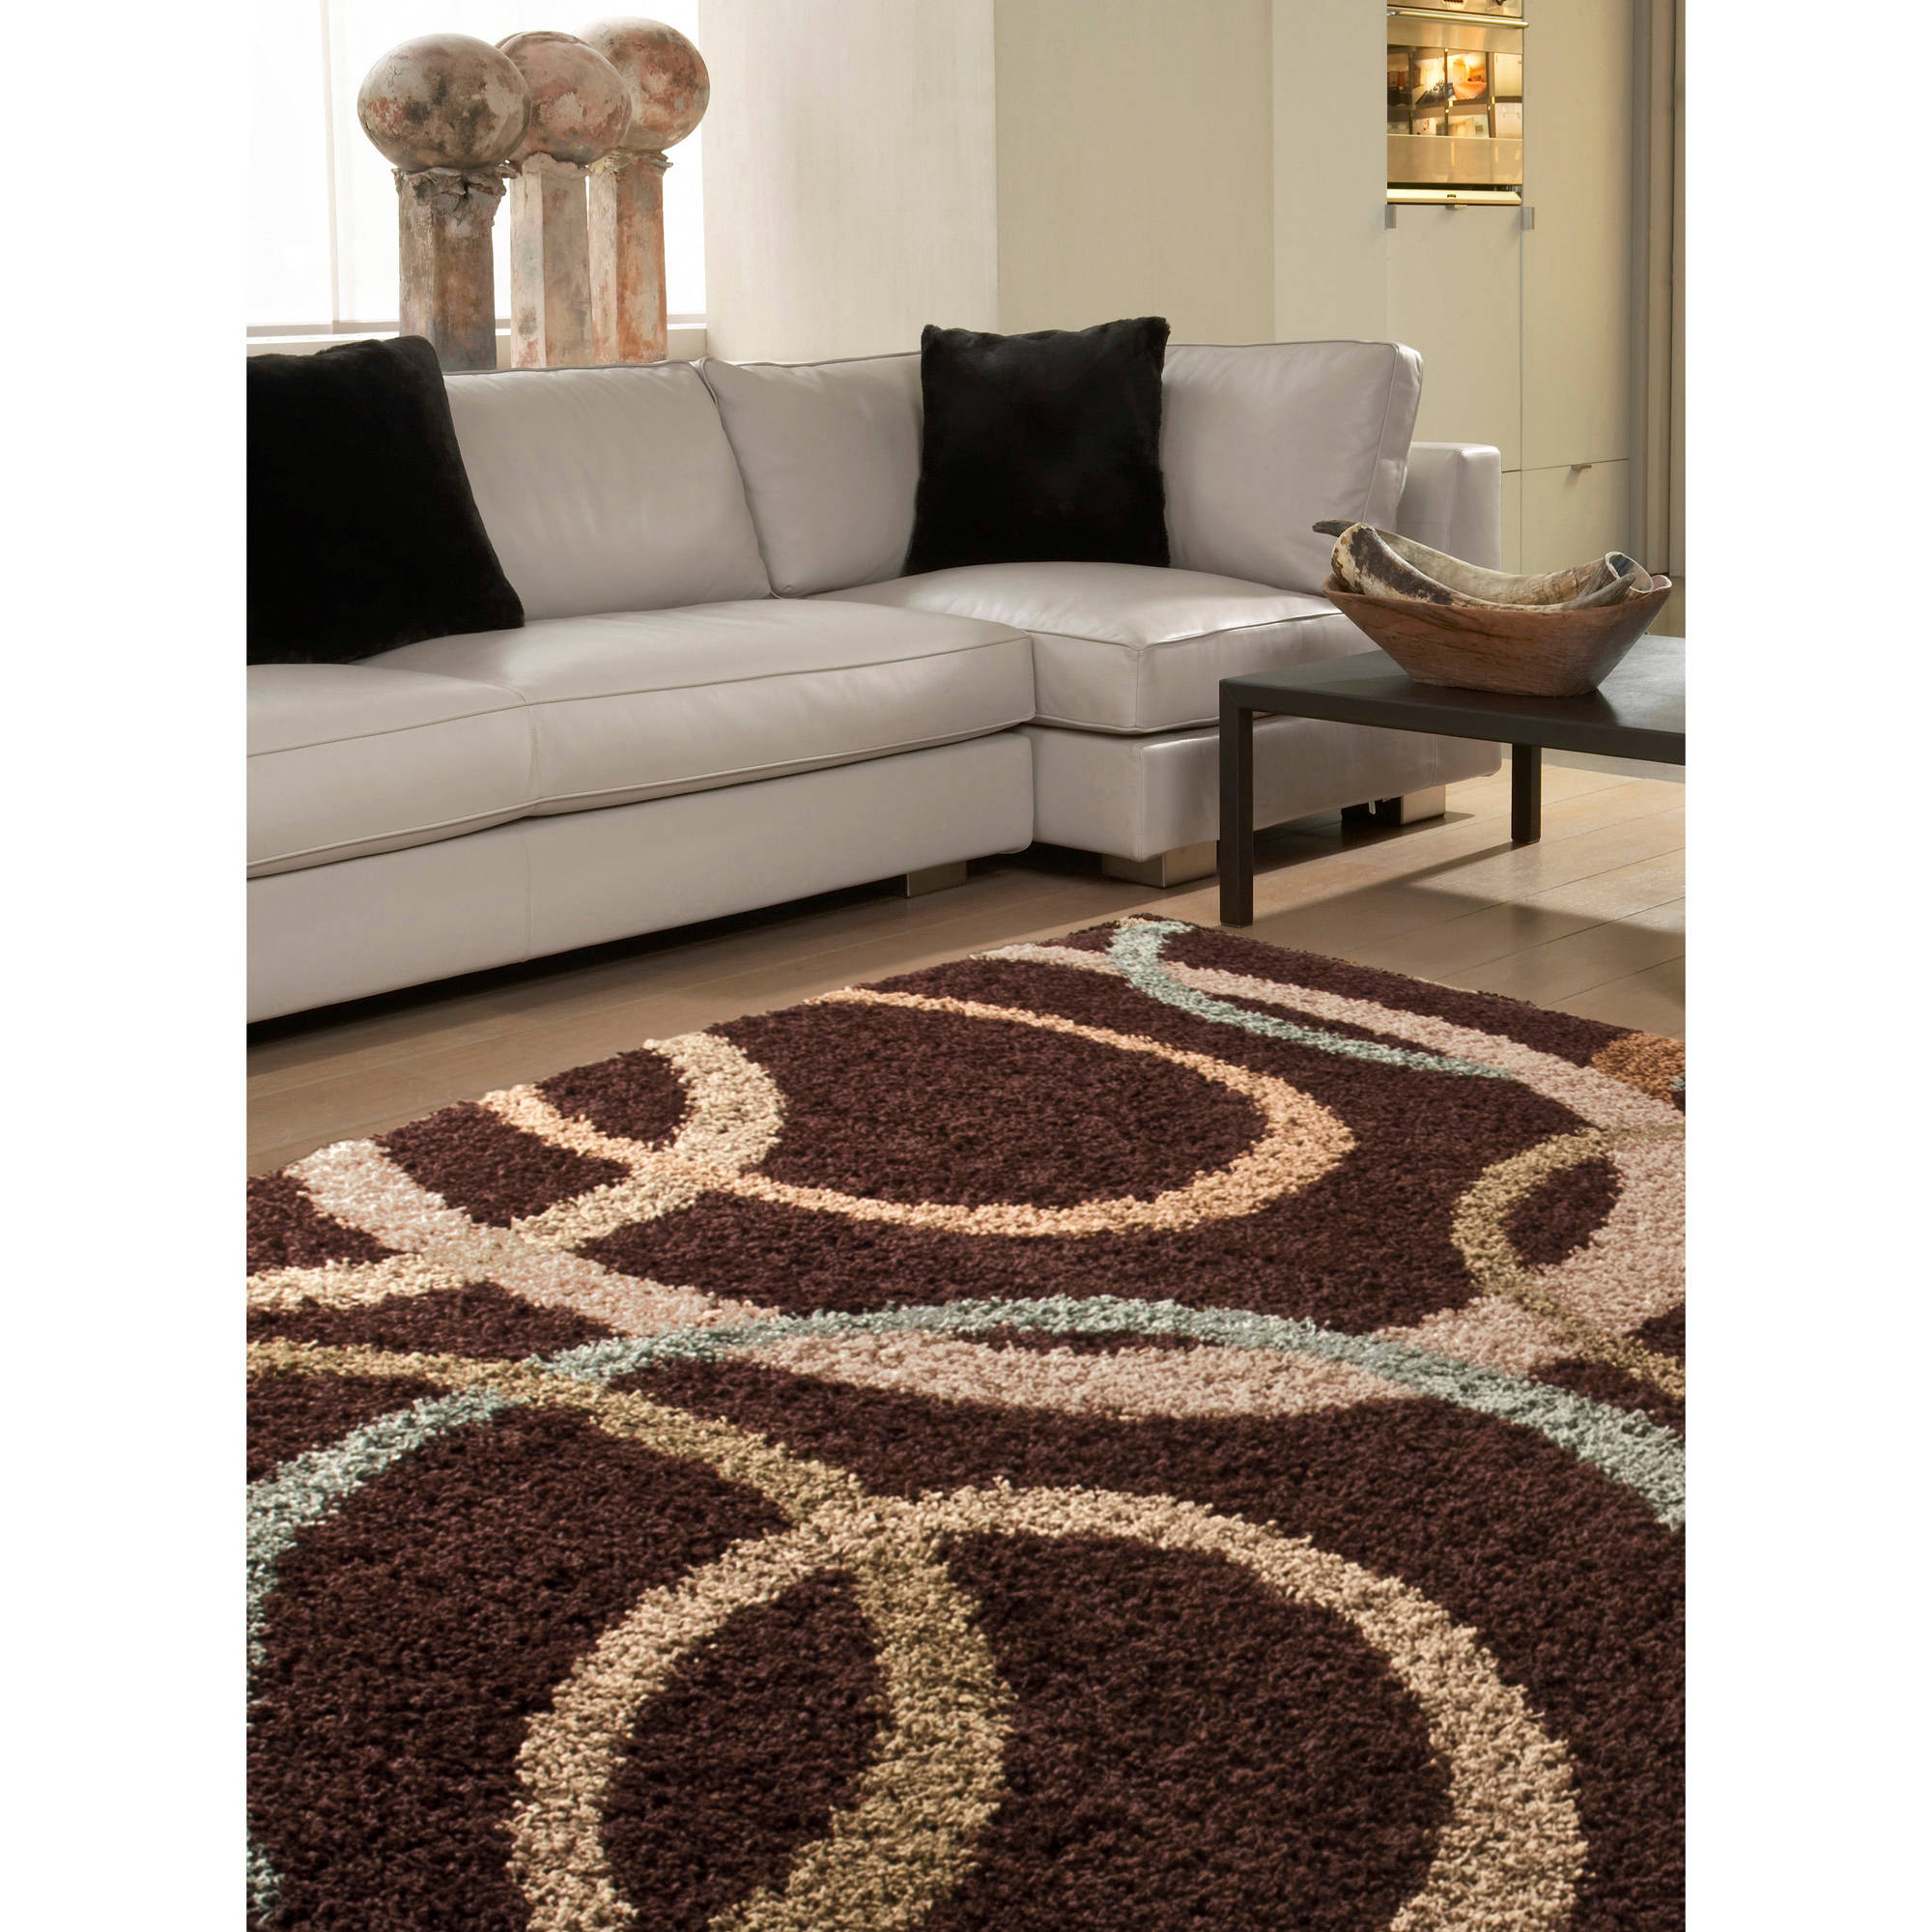 Better Homes and Gardens Pennylane Shag Runner Rug